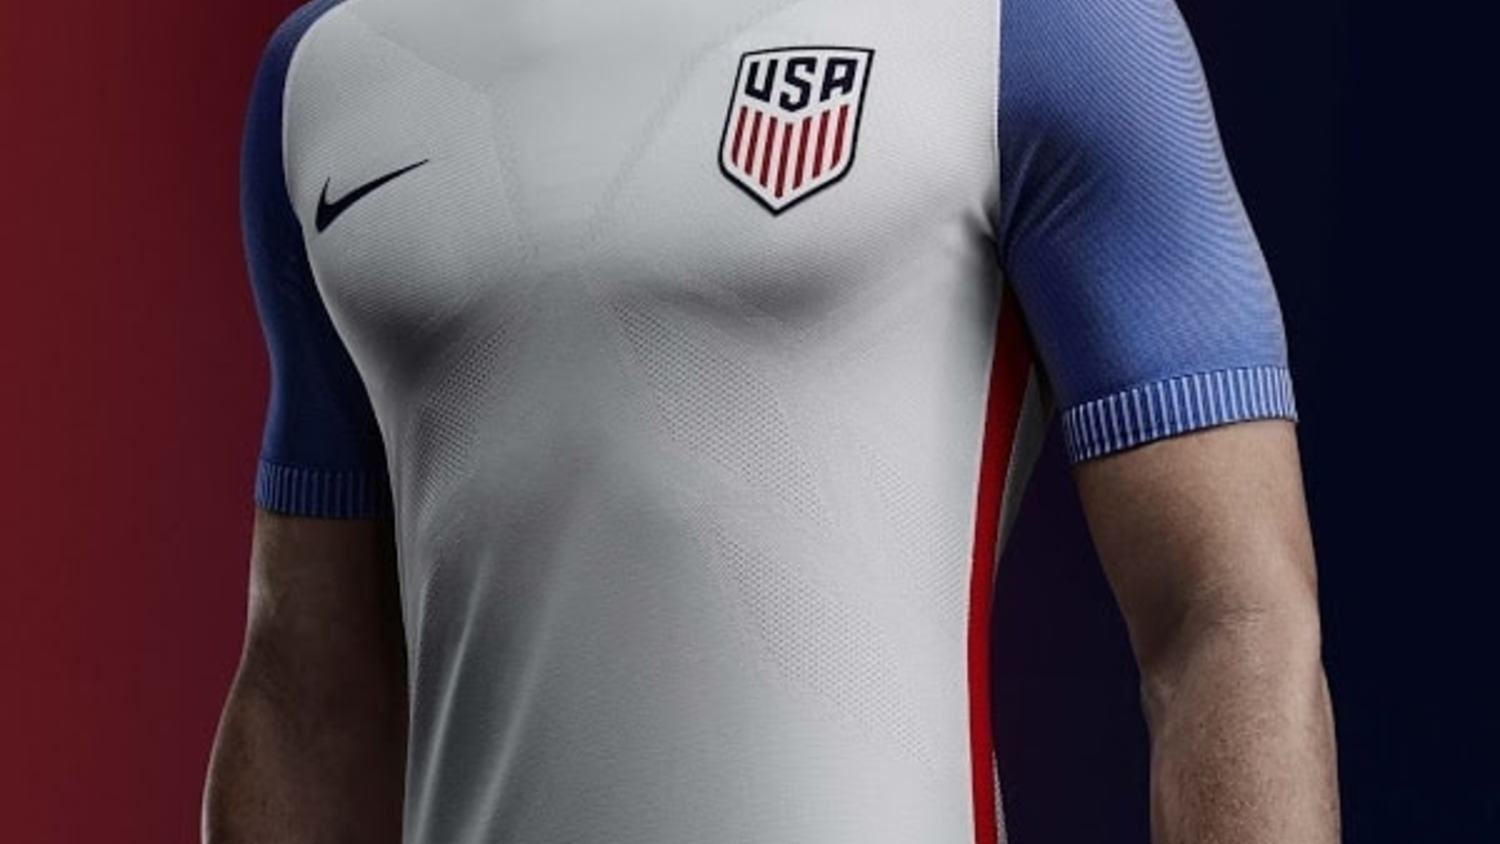 The Best International Kits for the Copa America Centenario